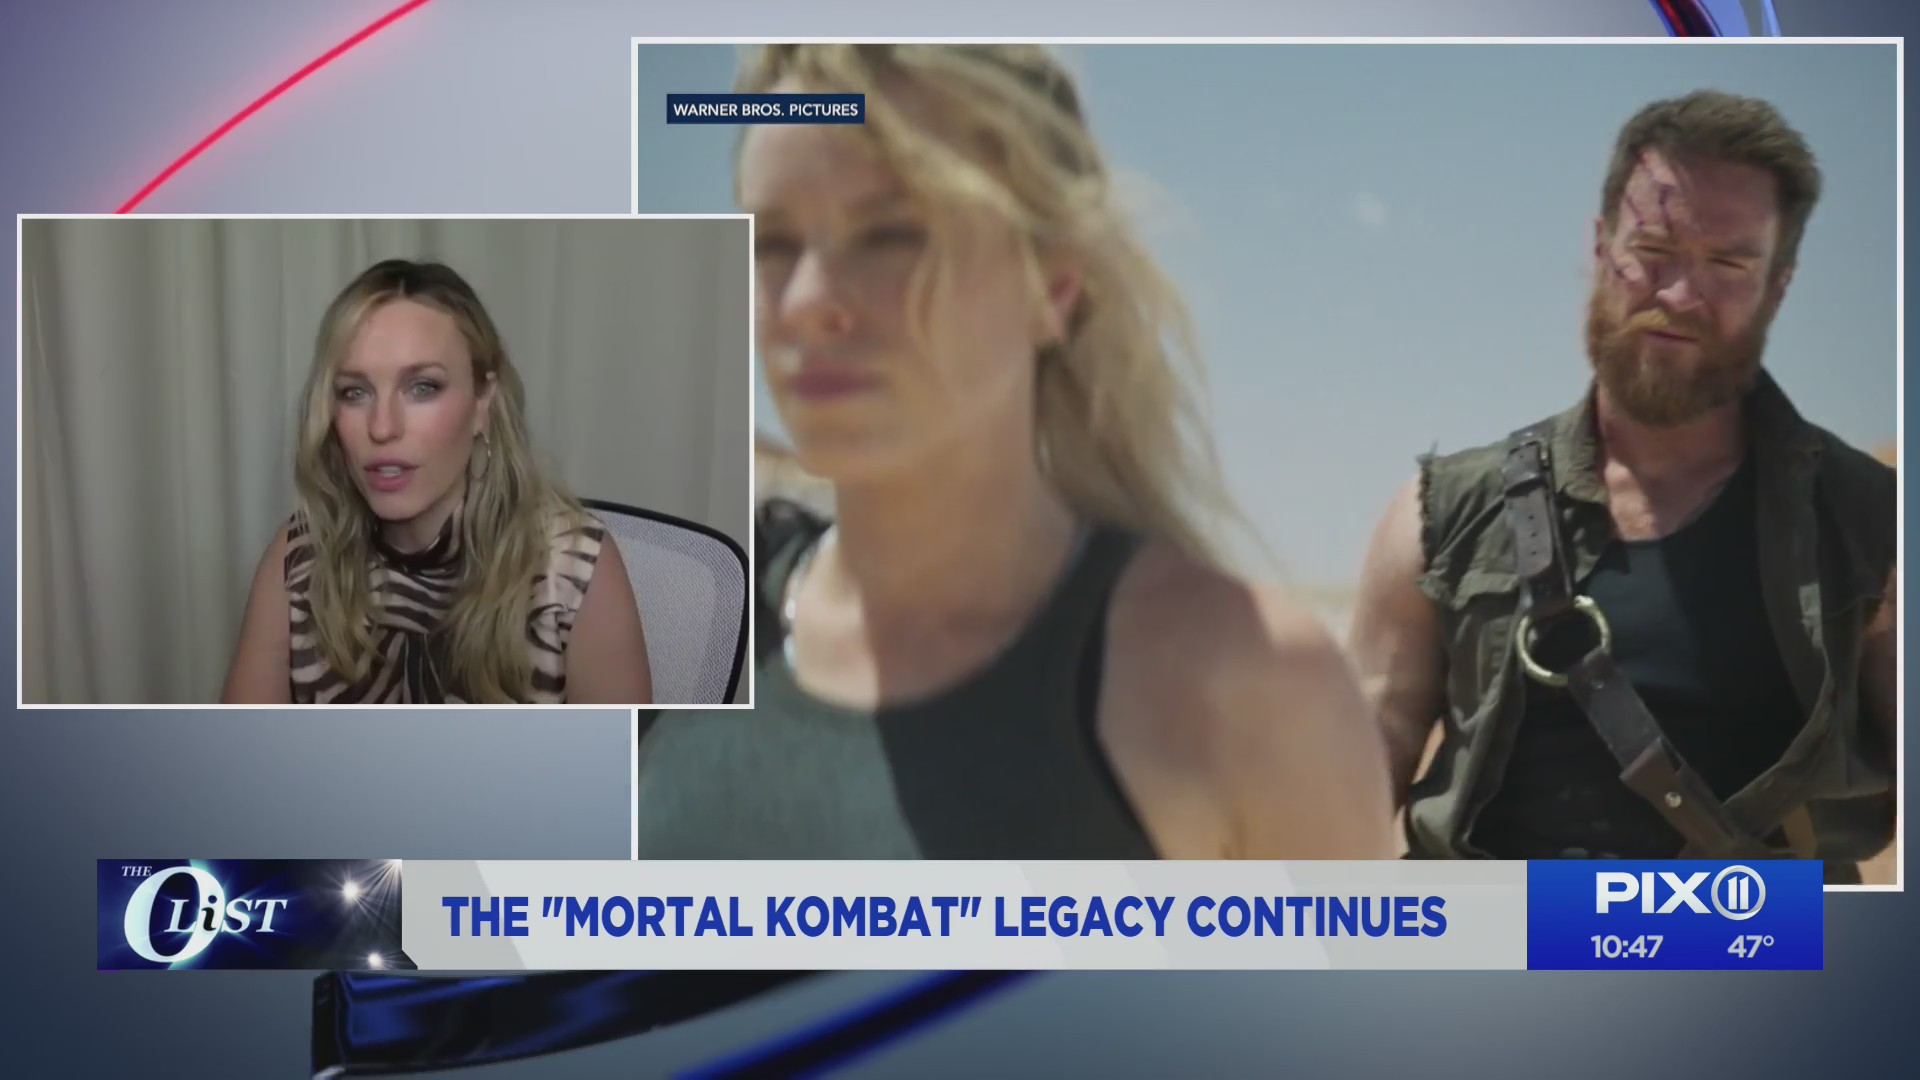 """Actress Jessica McNamee talks playing Sonya Blade in the new """"Mortal Kombat"""" movie on the PIX11 Morning News. (PIX11 News)"""